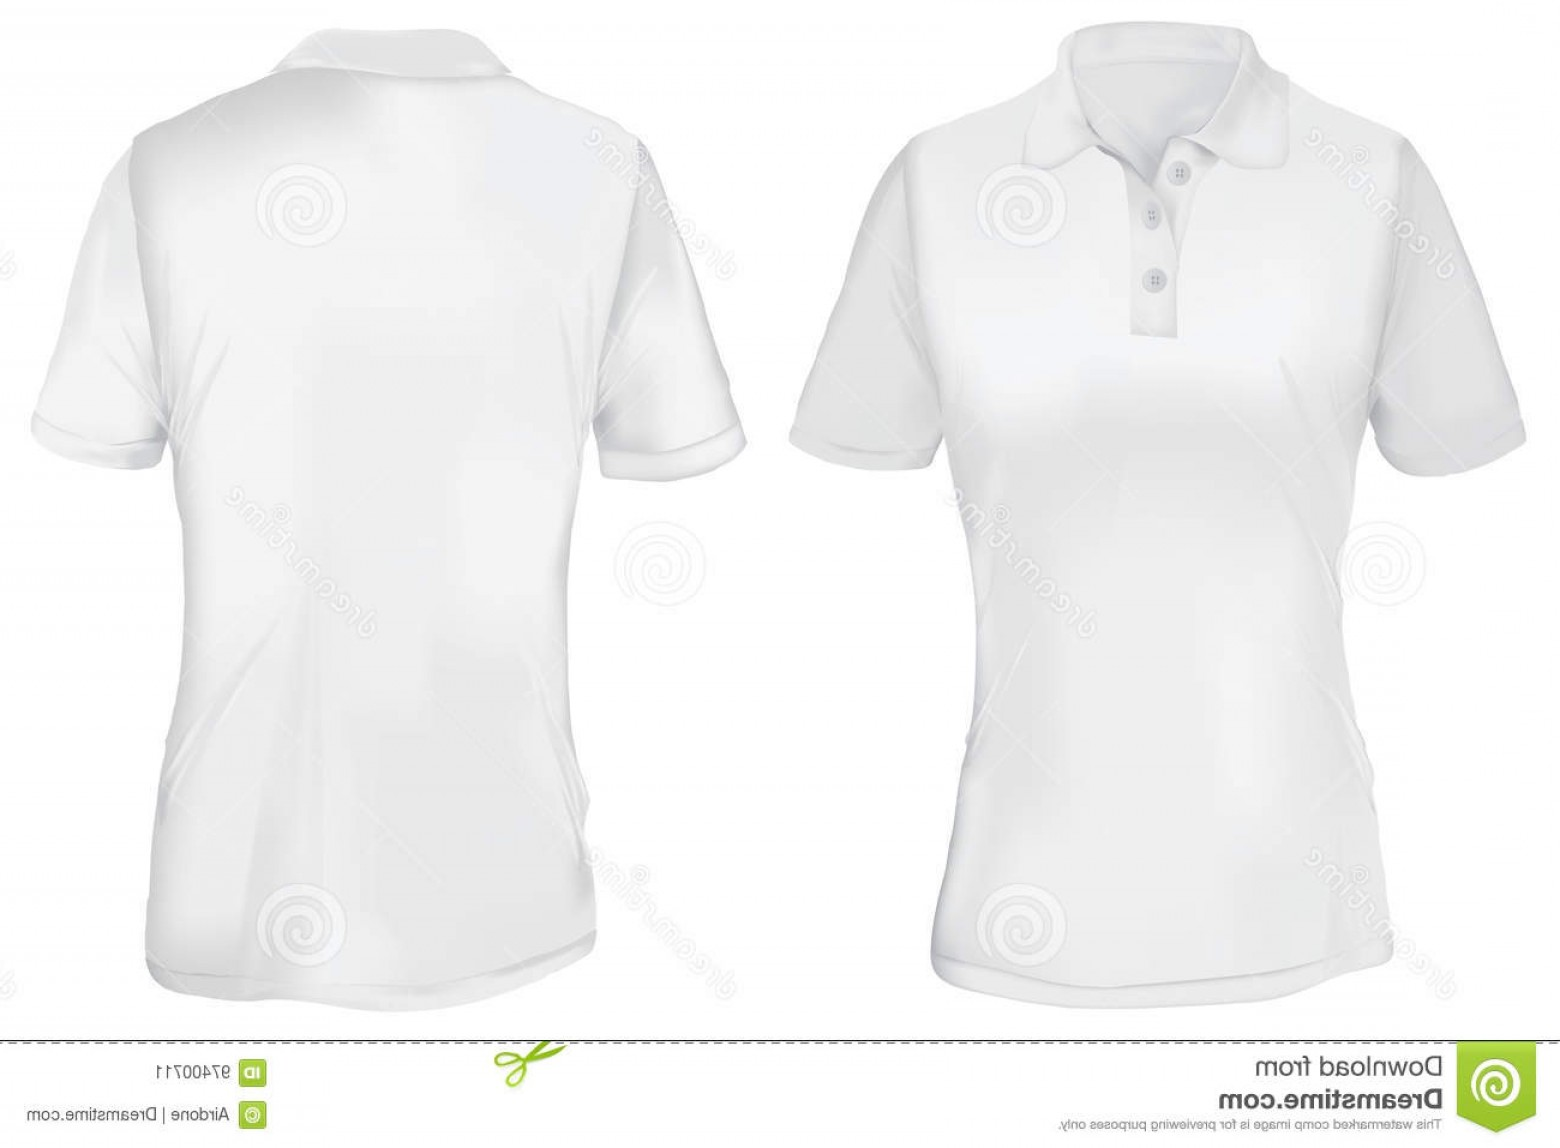 Female Polo Shirt Vector Template: Stock Illustration White Polo Shirt Template Woman Vector Illustration Blank T Front Back Design Isolated Image